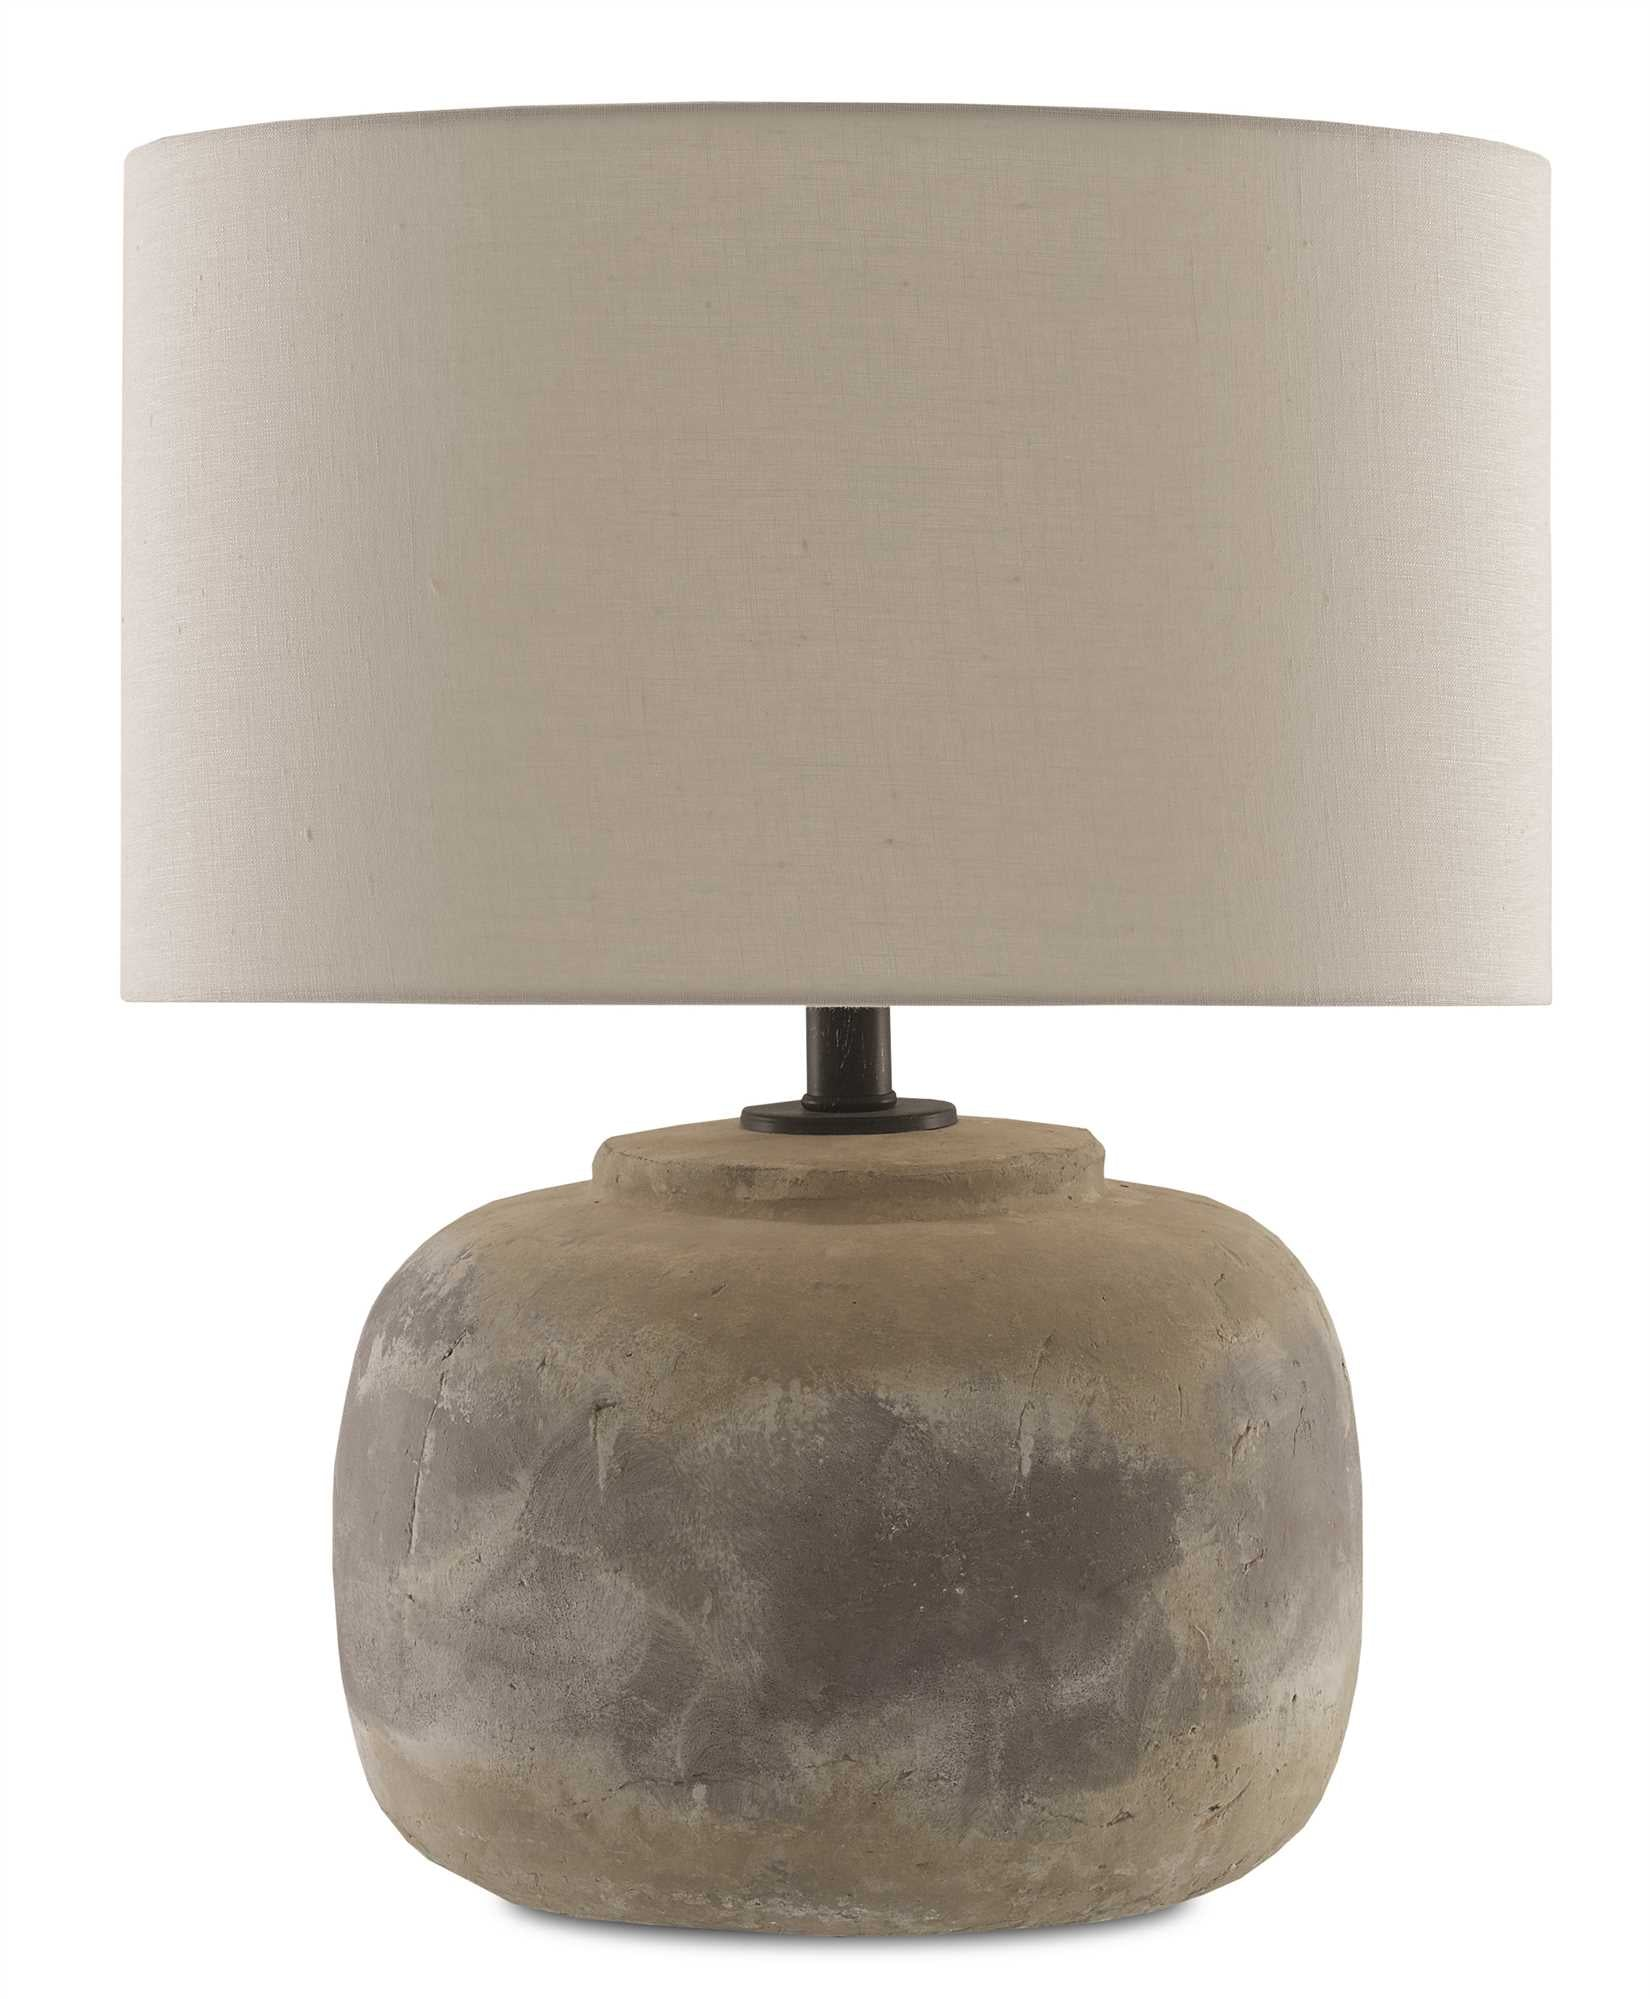 Currey and Company Beton Table Lamp 6000-0272